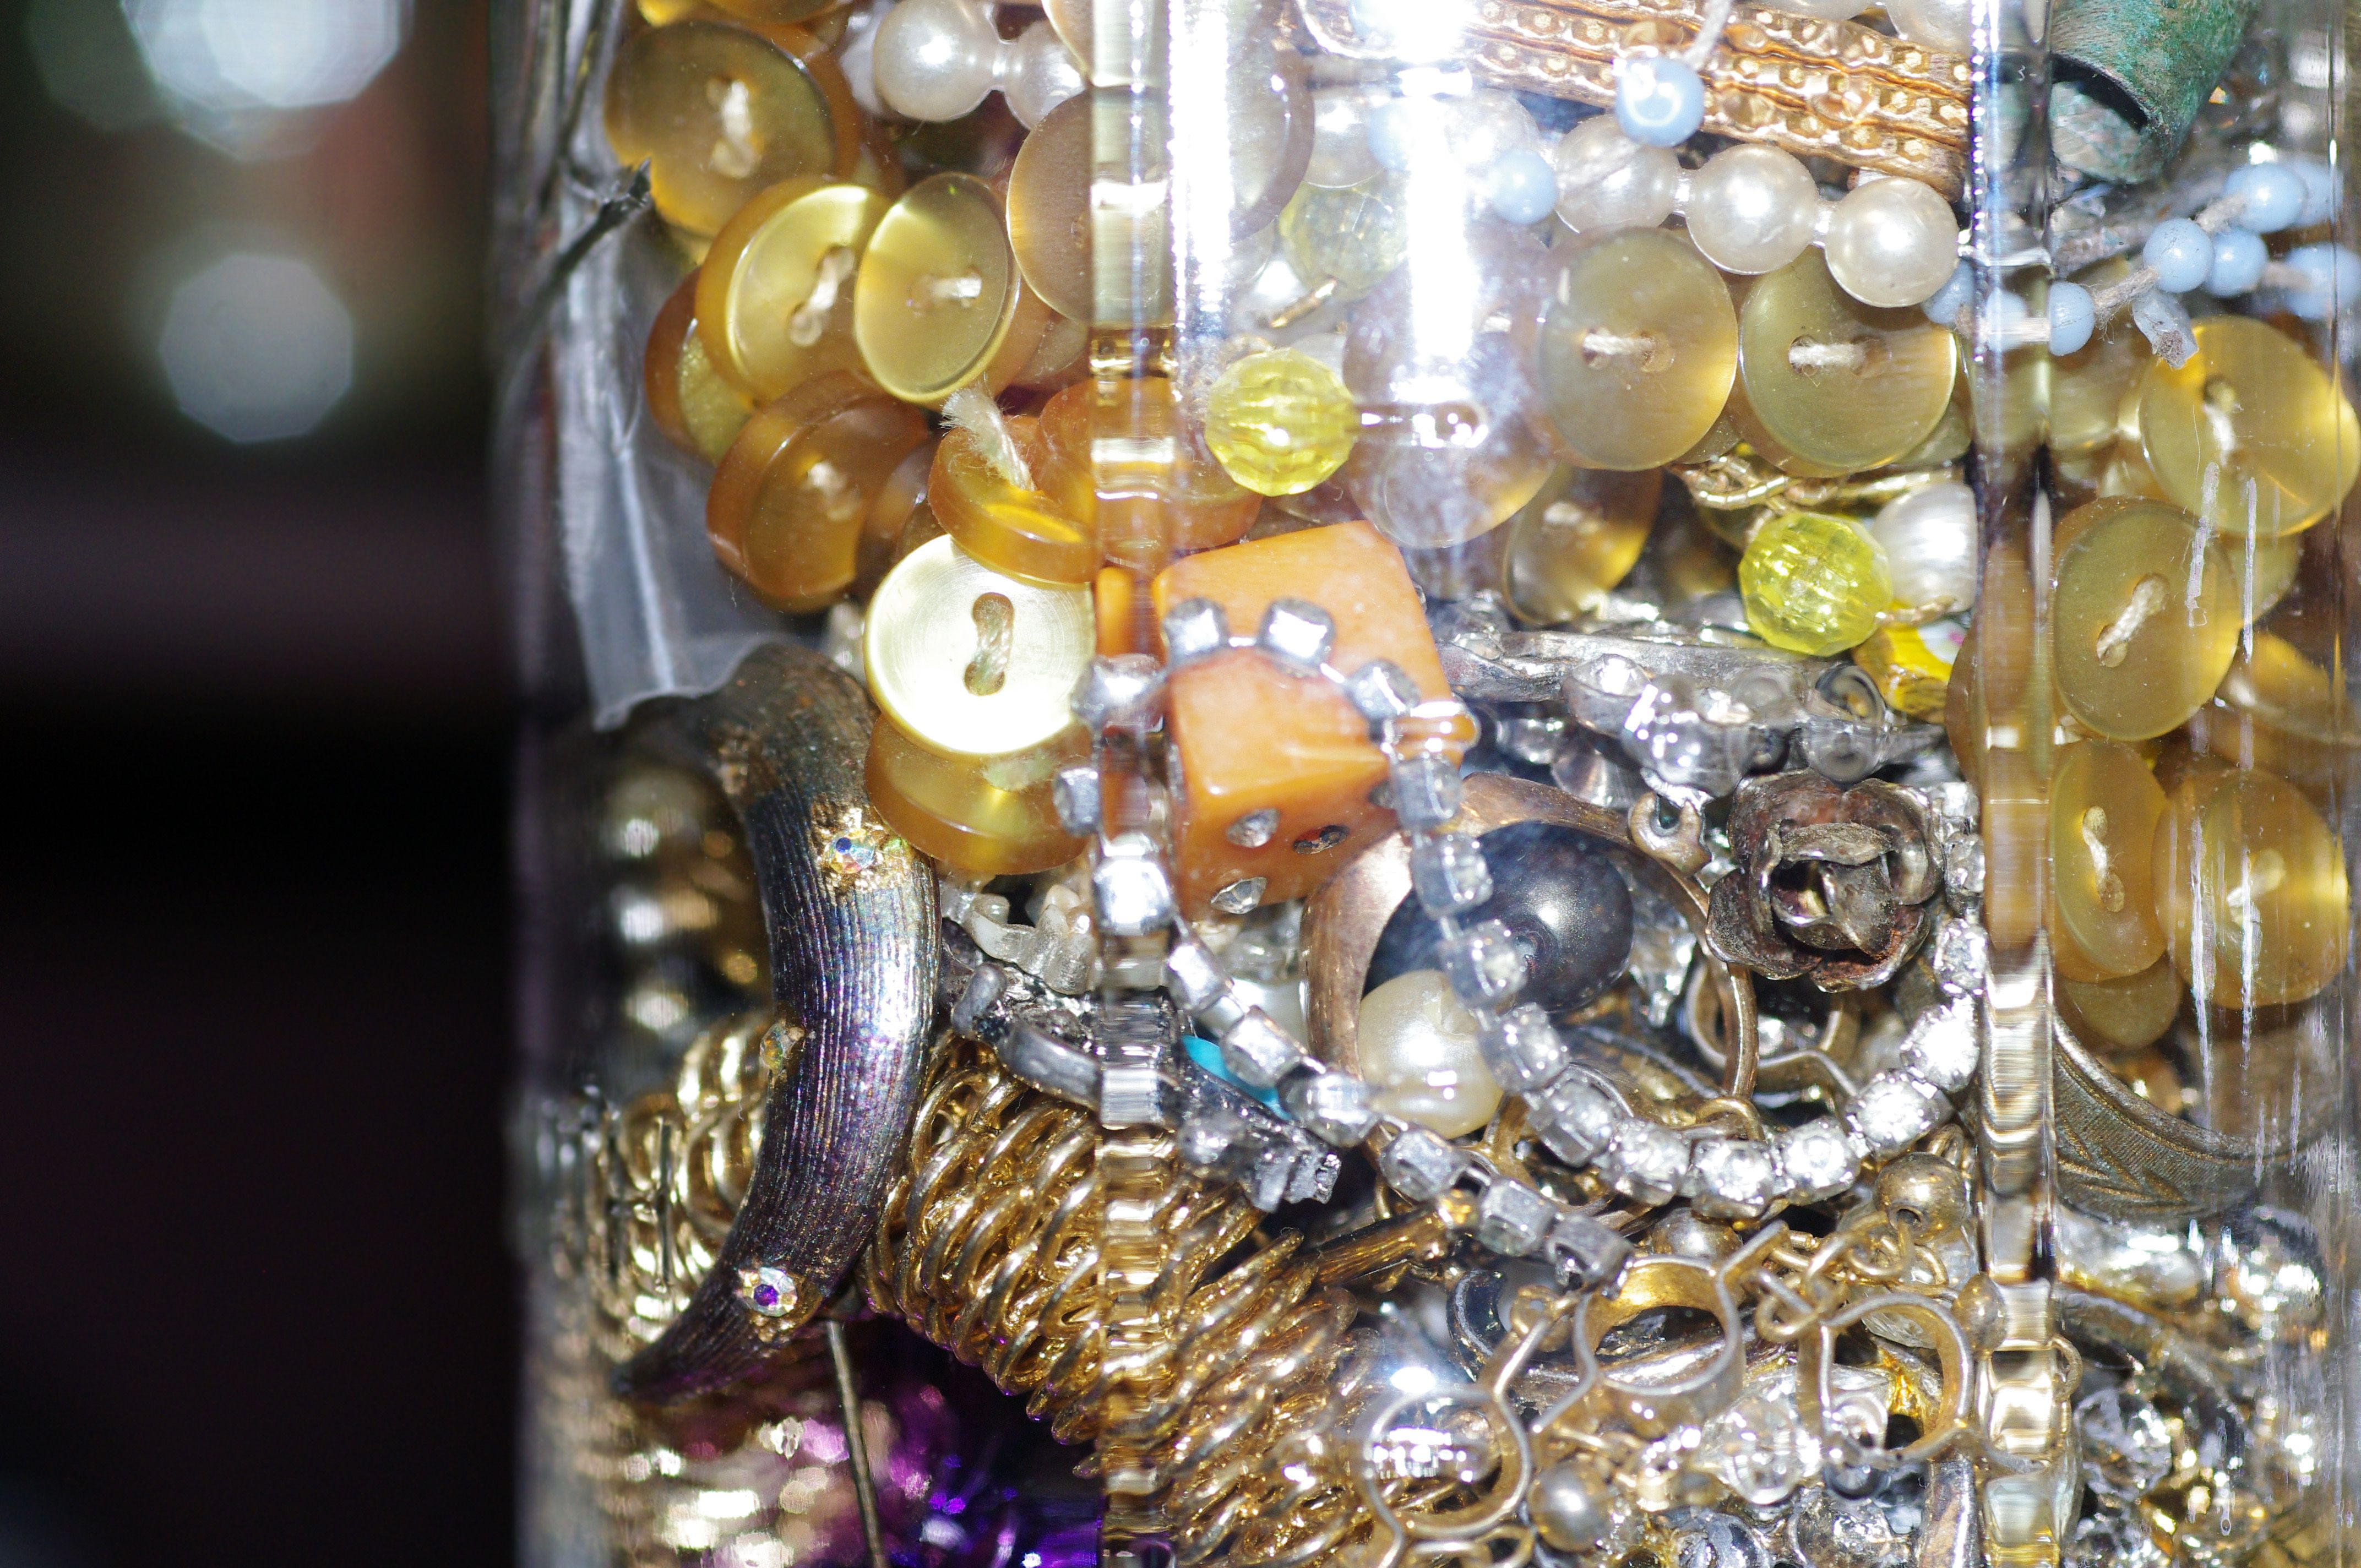 Close-Up of an Old Jar of Buttons and Jewelry